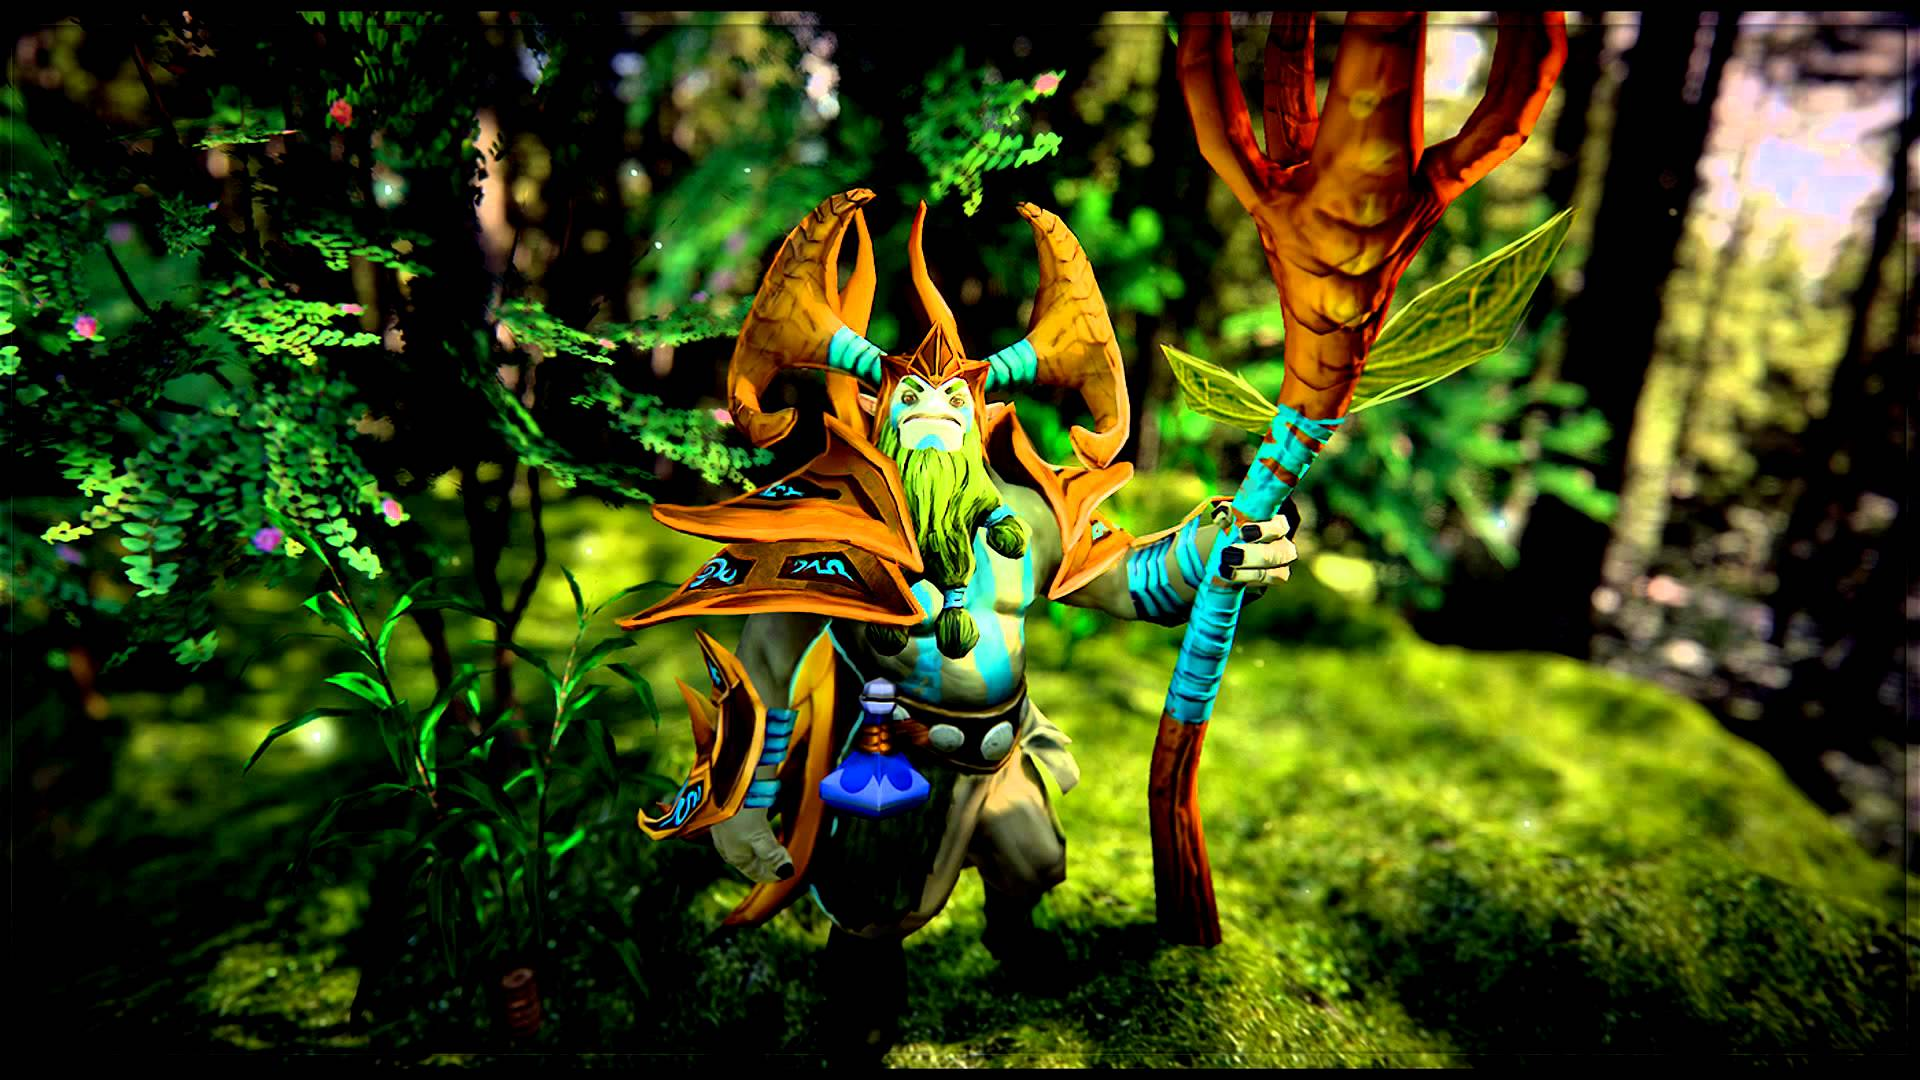 Download 480x800 dota 2, abstract art wallpaper, background htc, samsung galaxy s2/2, ace 480x800